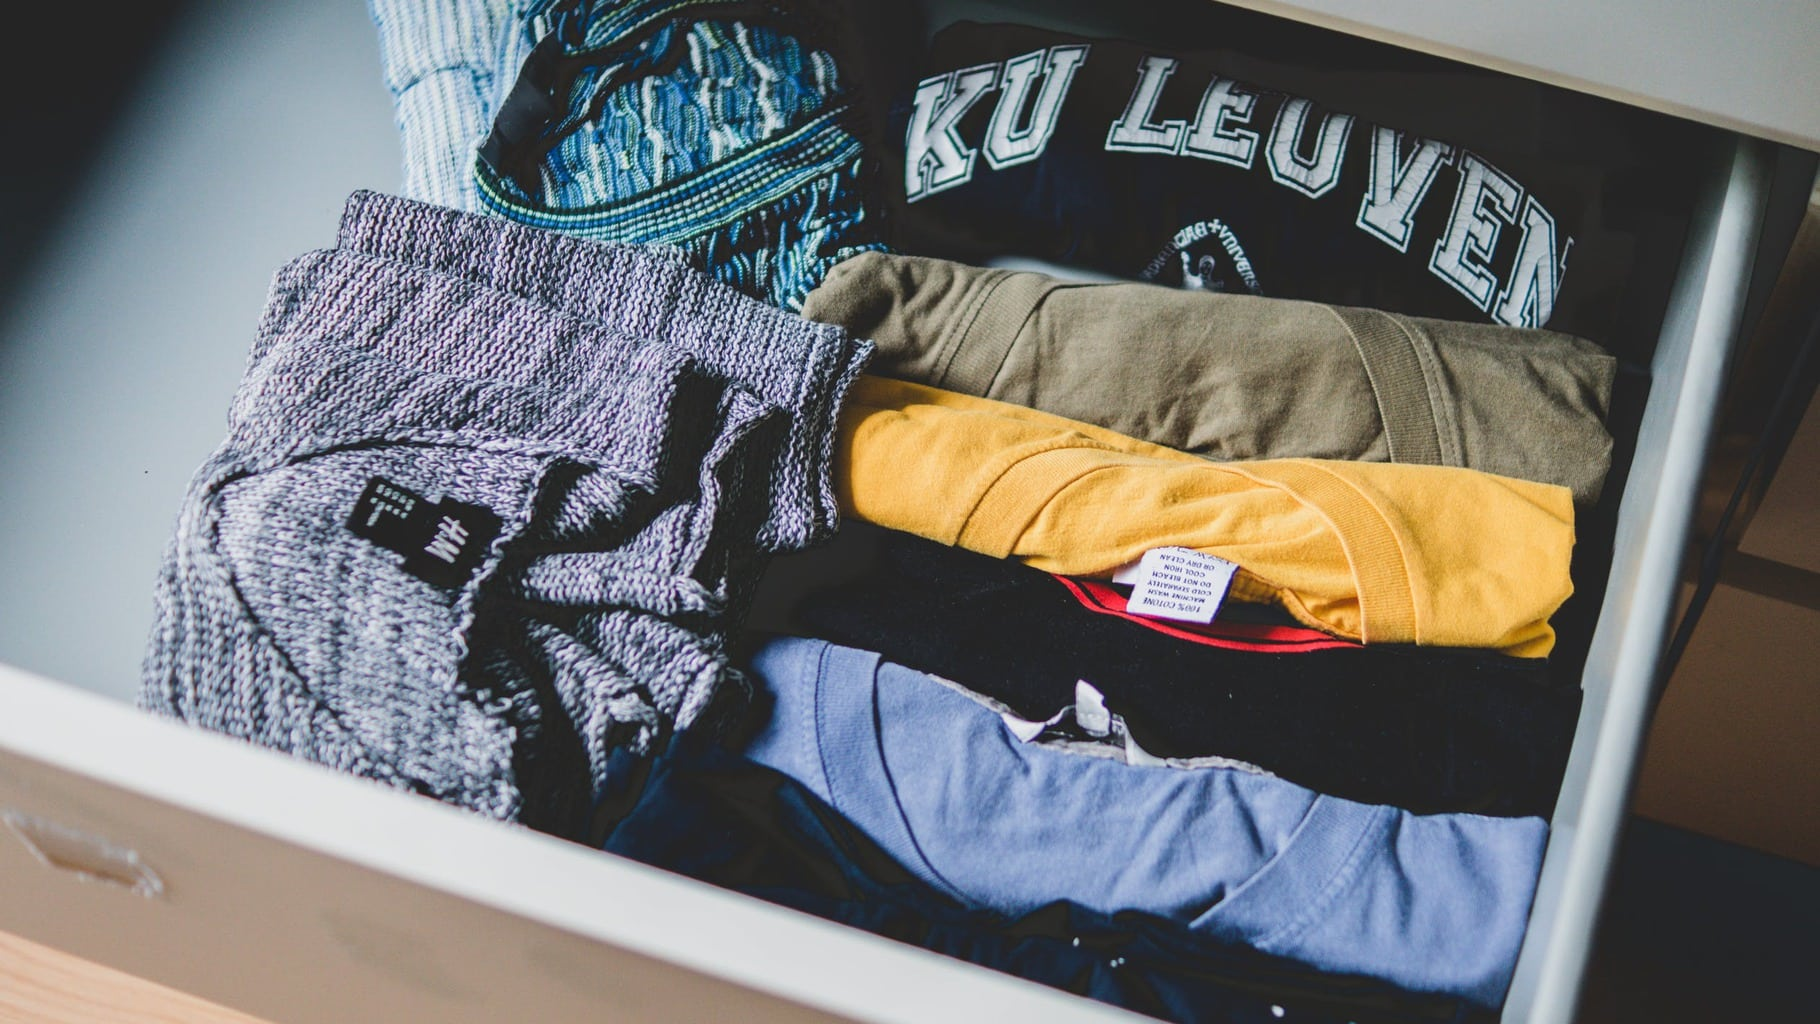 Drawer filled with folded t-shirts